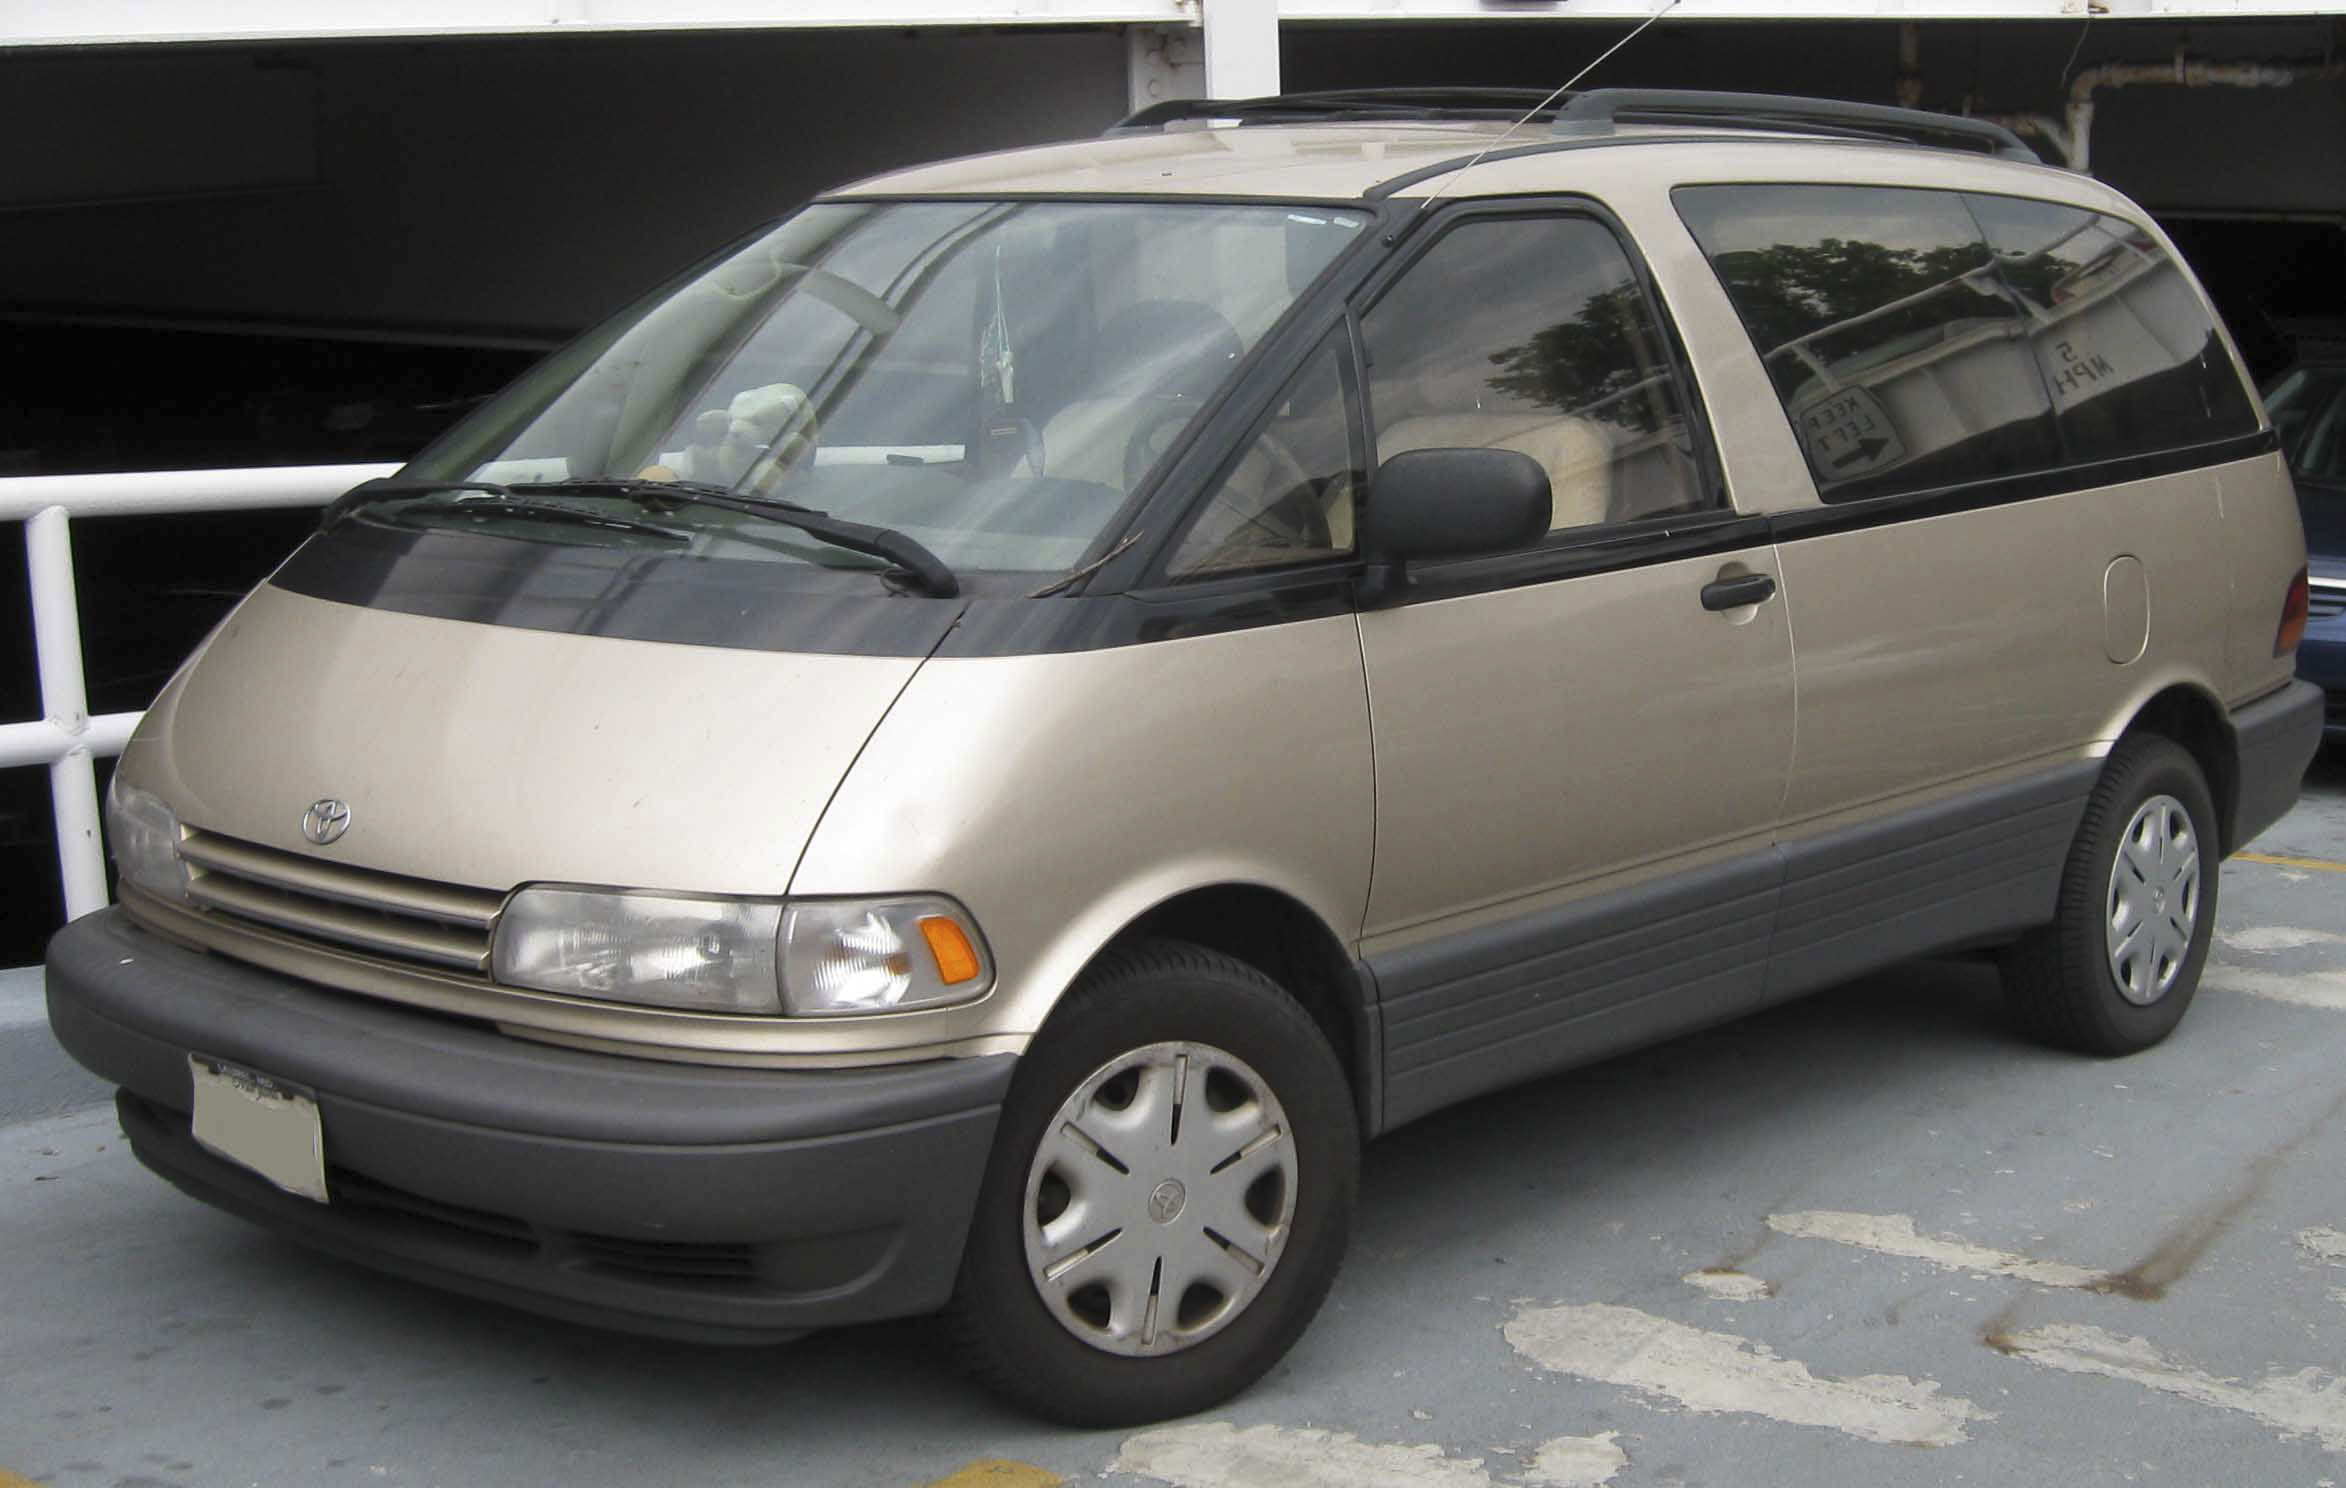 The Previa was cool, but neither it nor the Mazda MPV that succeeded it were as bulletproof as we'd hoped.